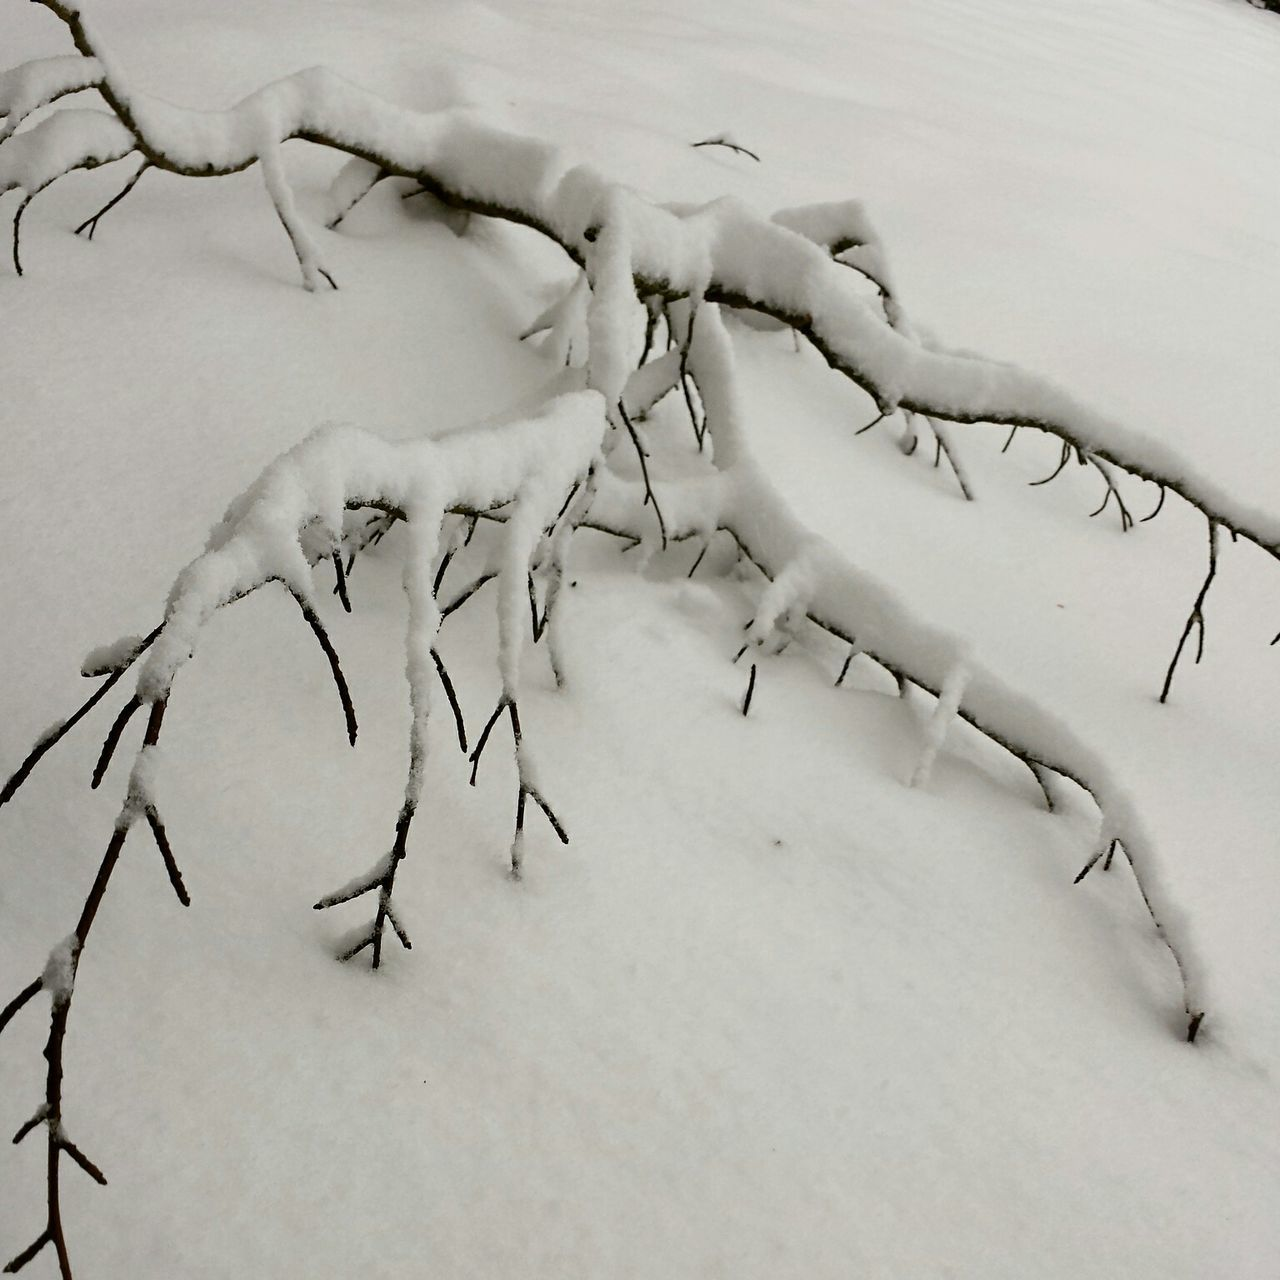 A branch figthing it's way through the snow ... Winter Snow Winter Garden